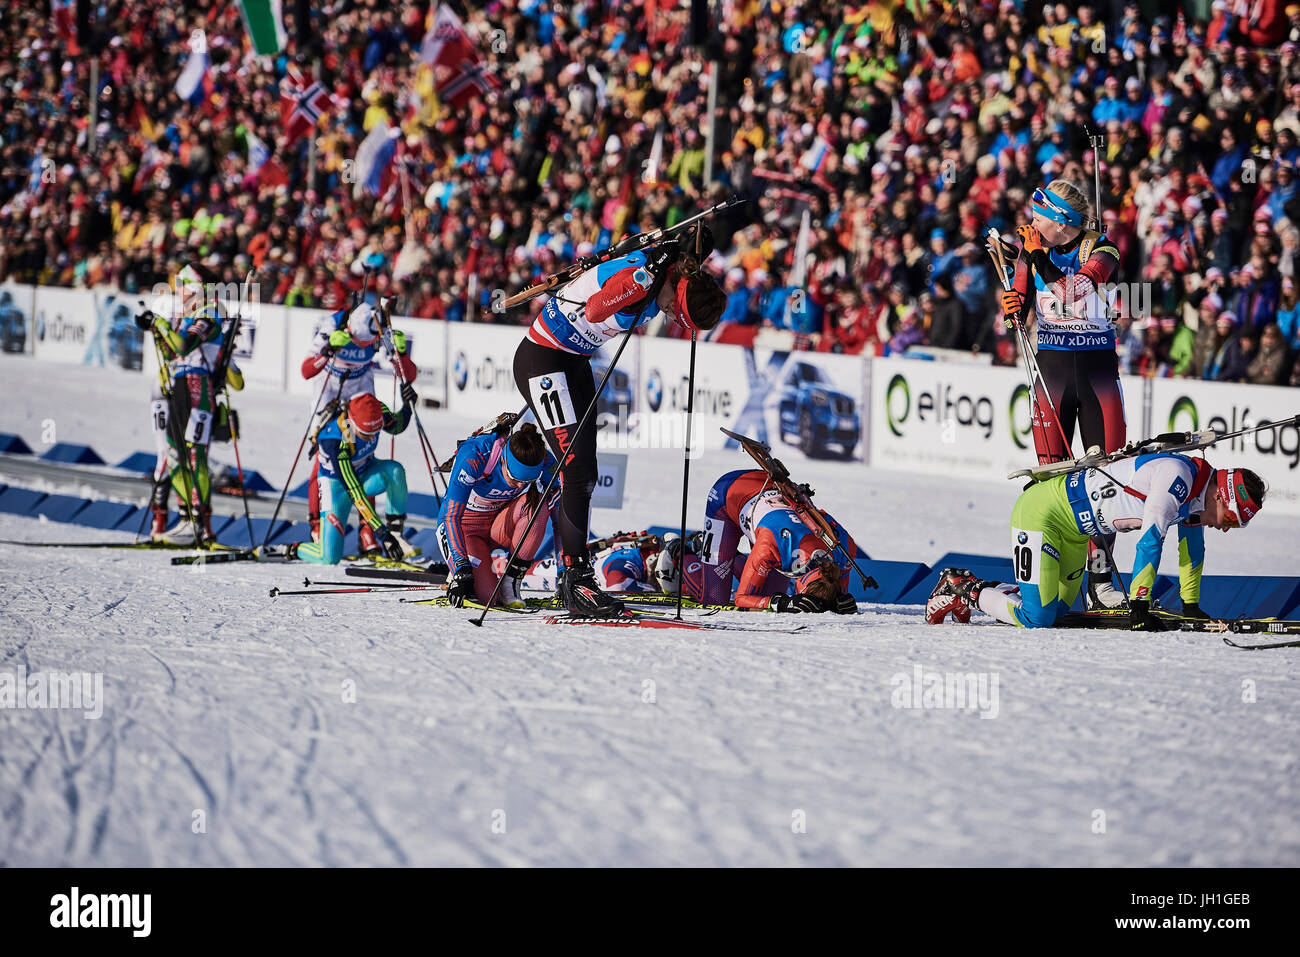 Teams from the Woman's relay exhausted after the hand over at the IBU Biathlon World Championships Oslo Norway - Stock Image